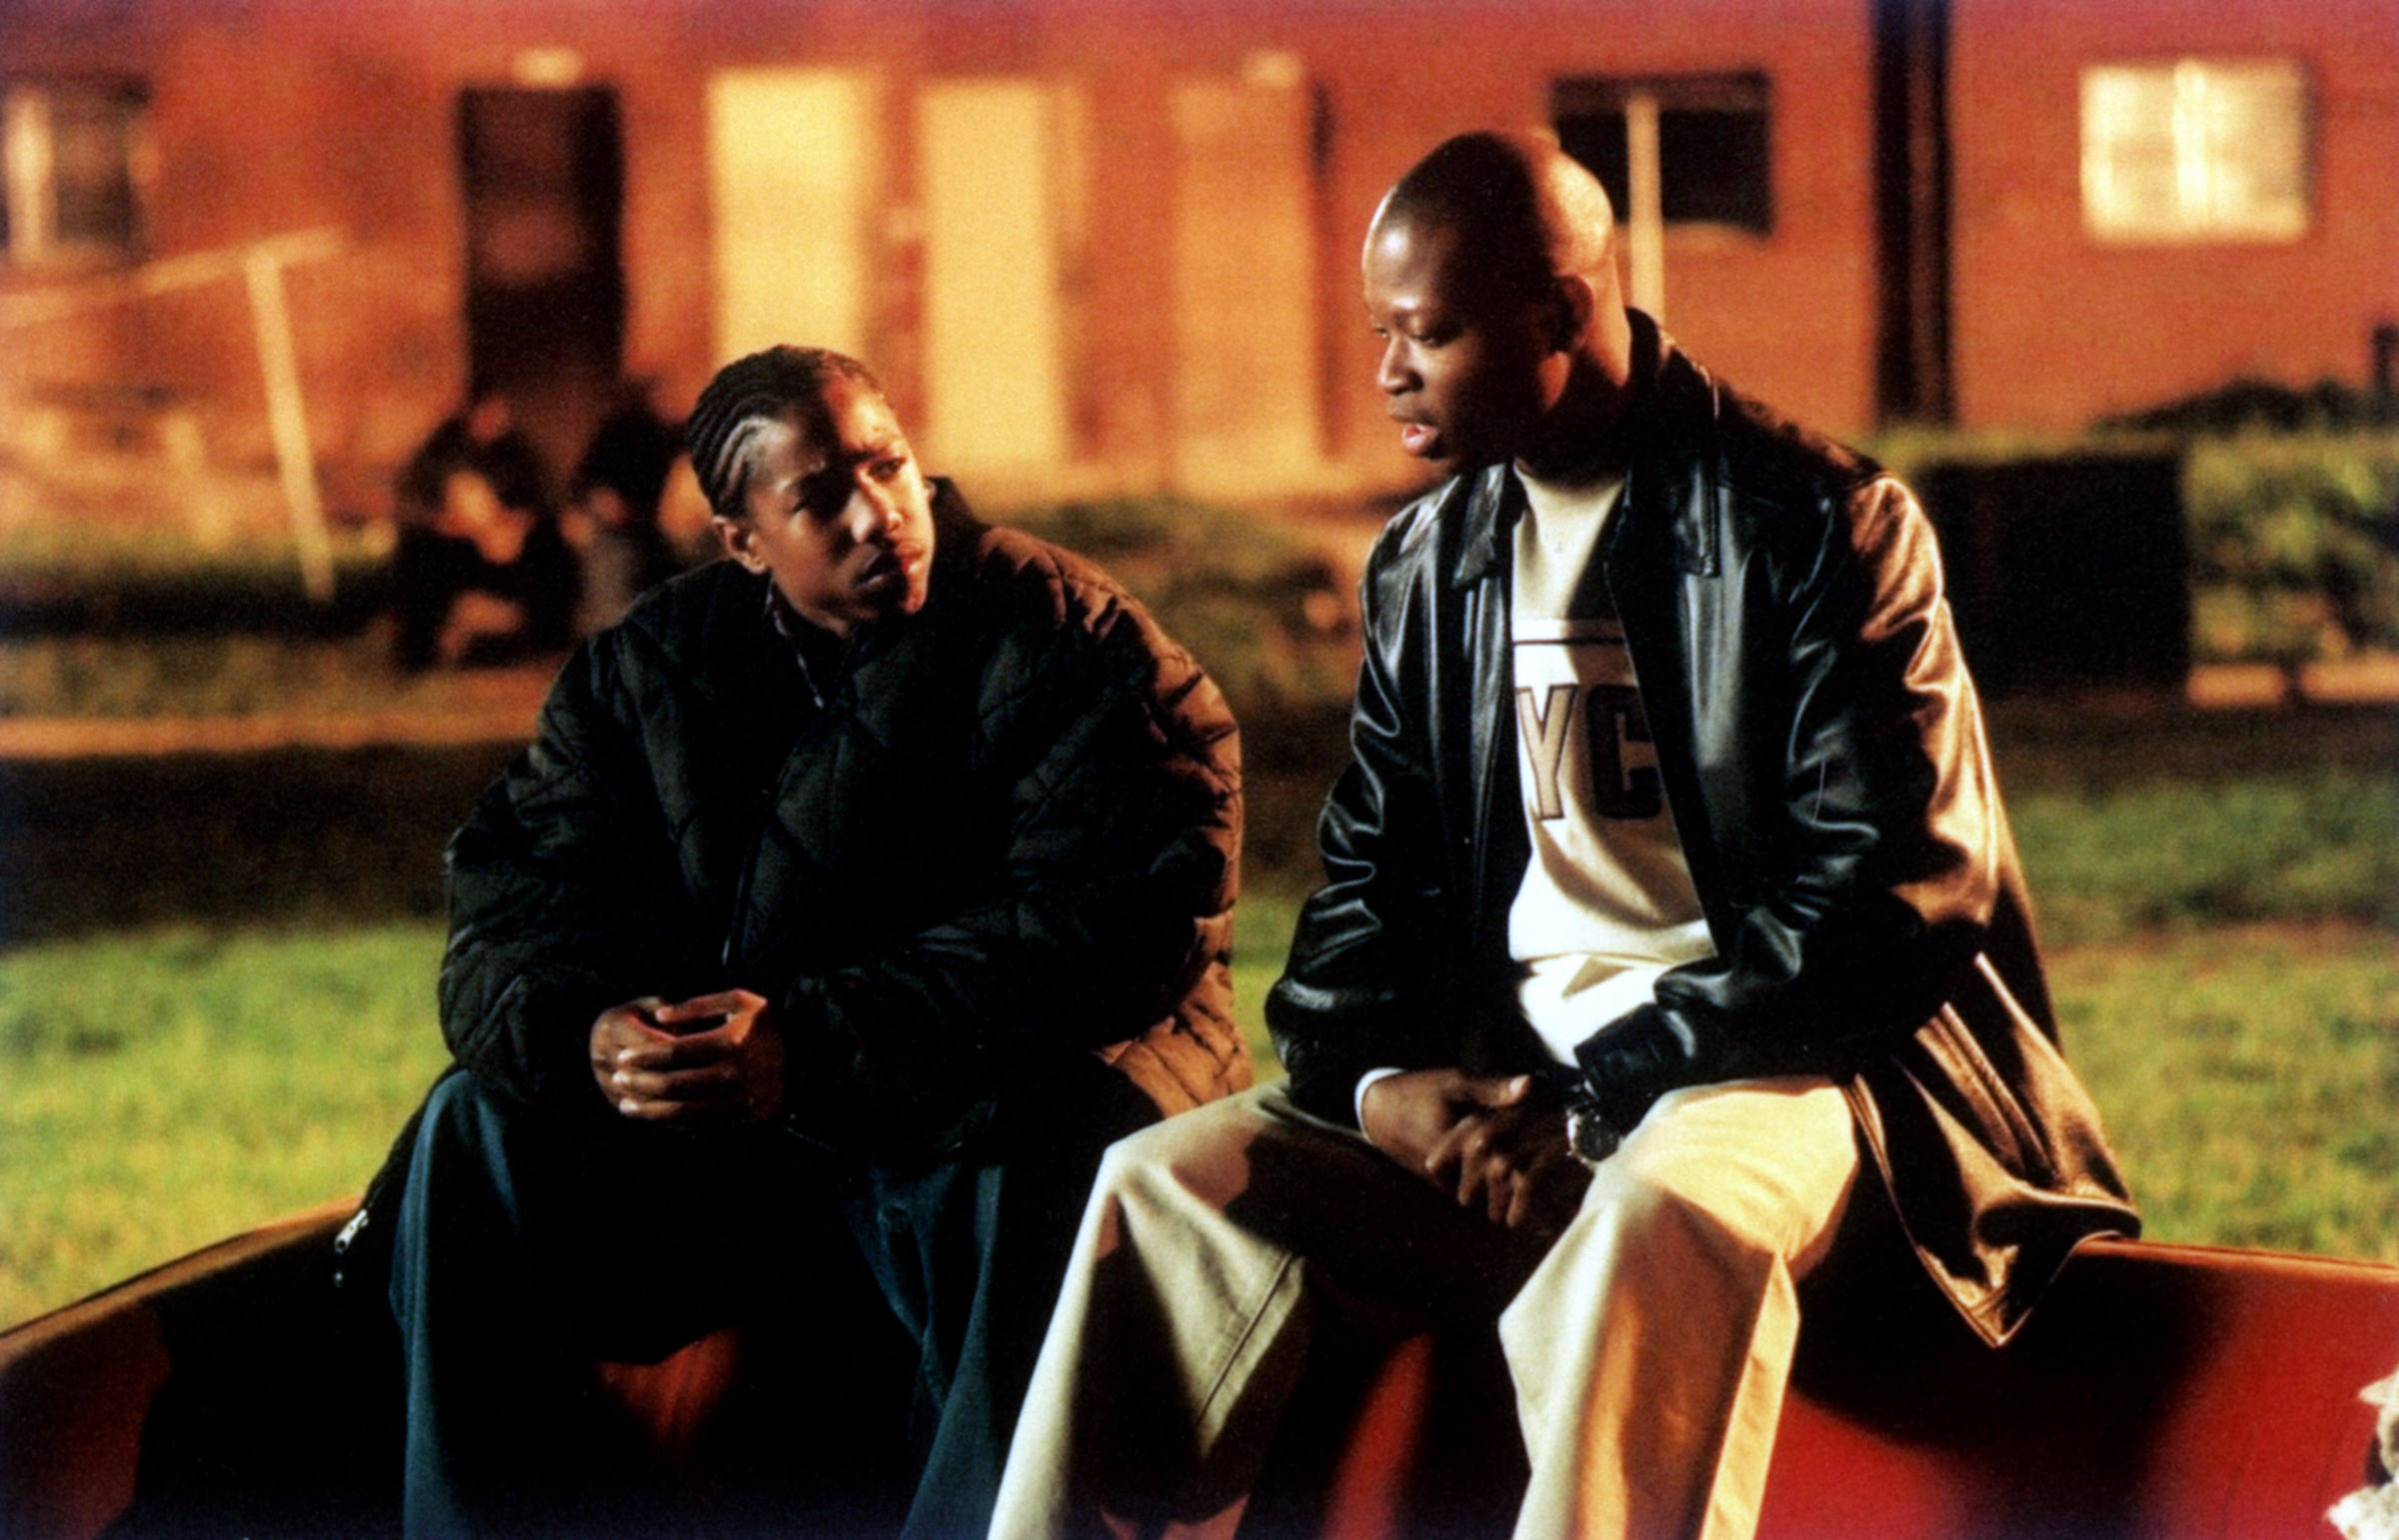 THE WIRE, Larry Gilliard Jr. (right), (Season 1), 2002-08. © HBO / Courtesy: Everett Collection